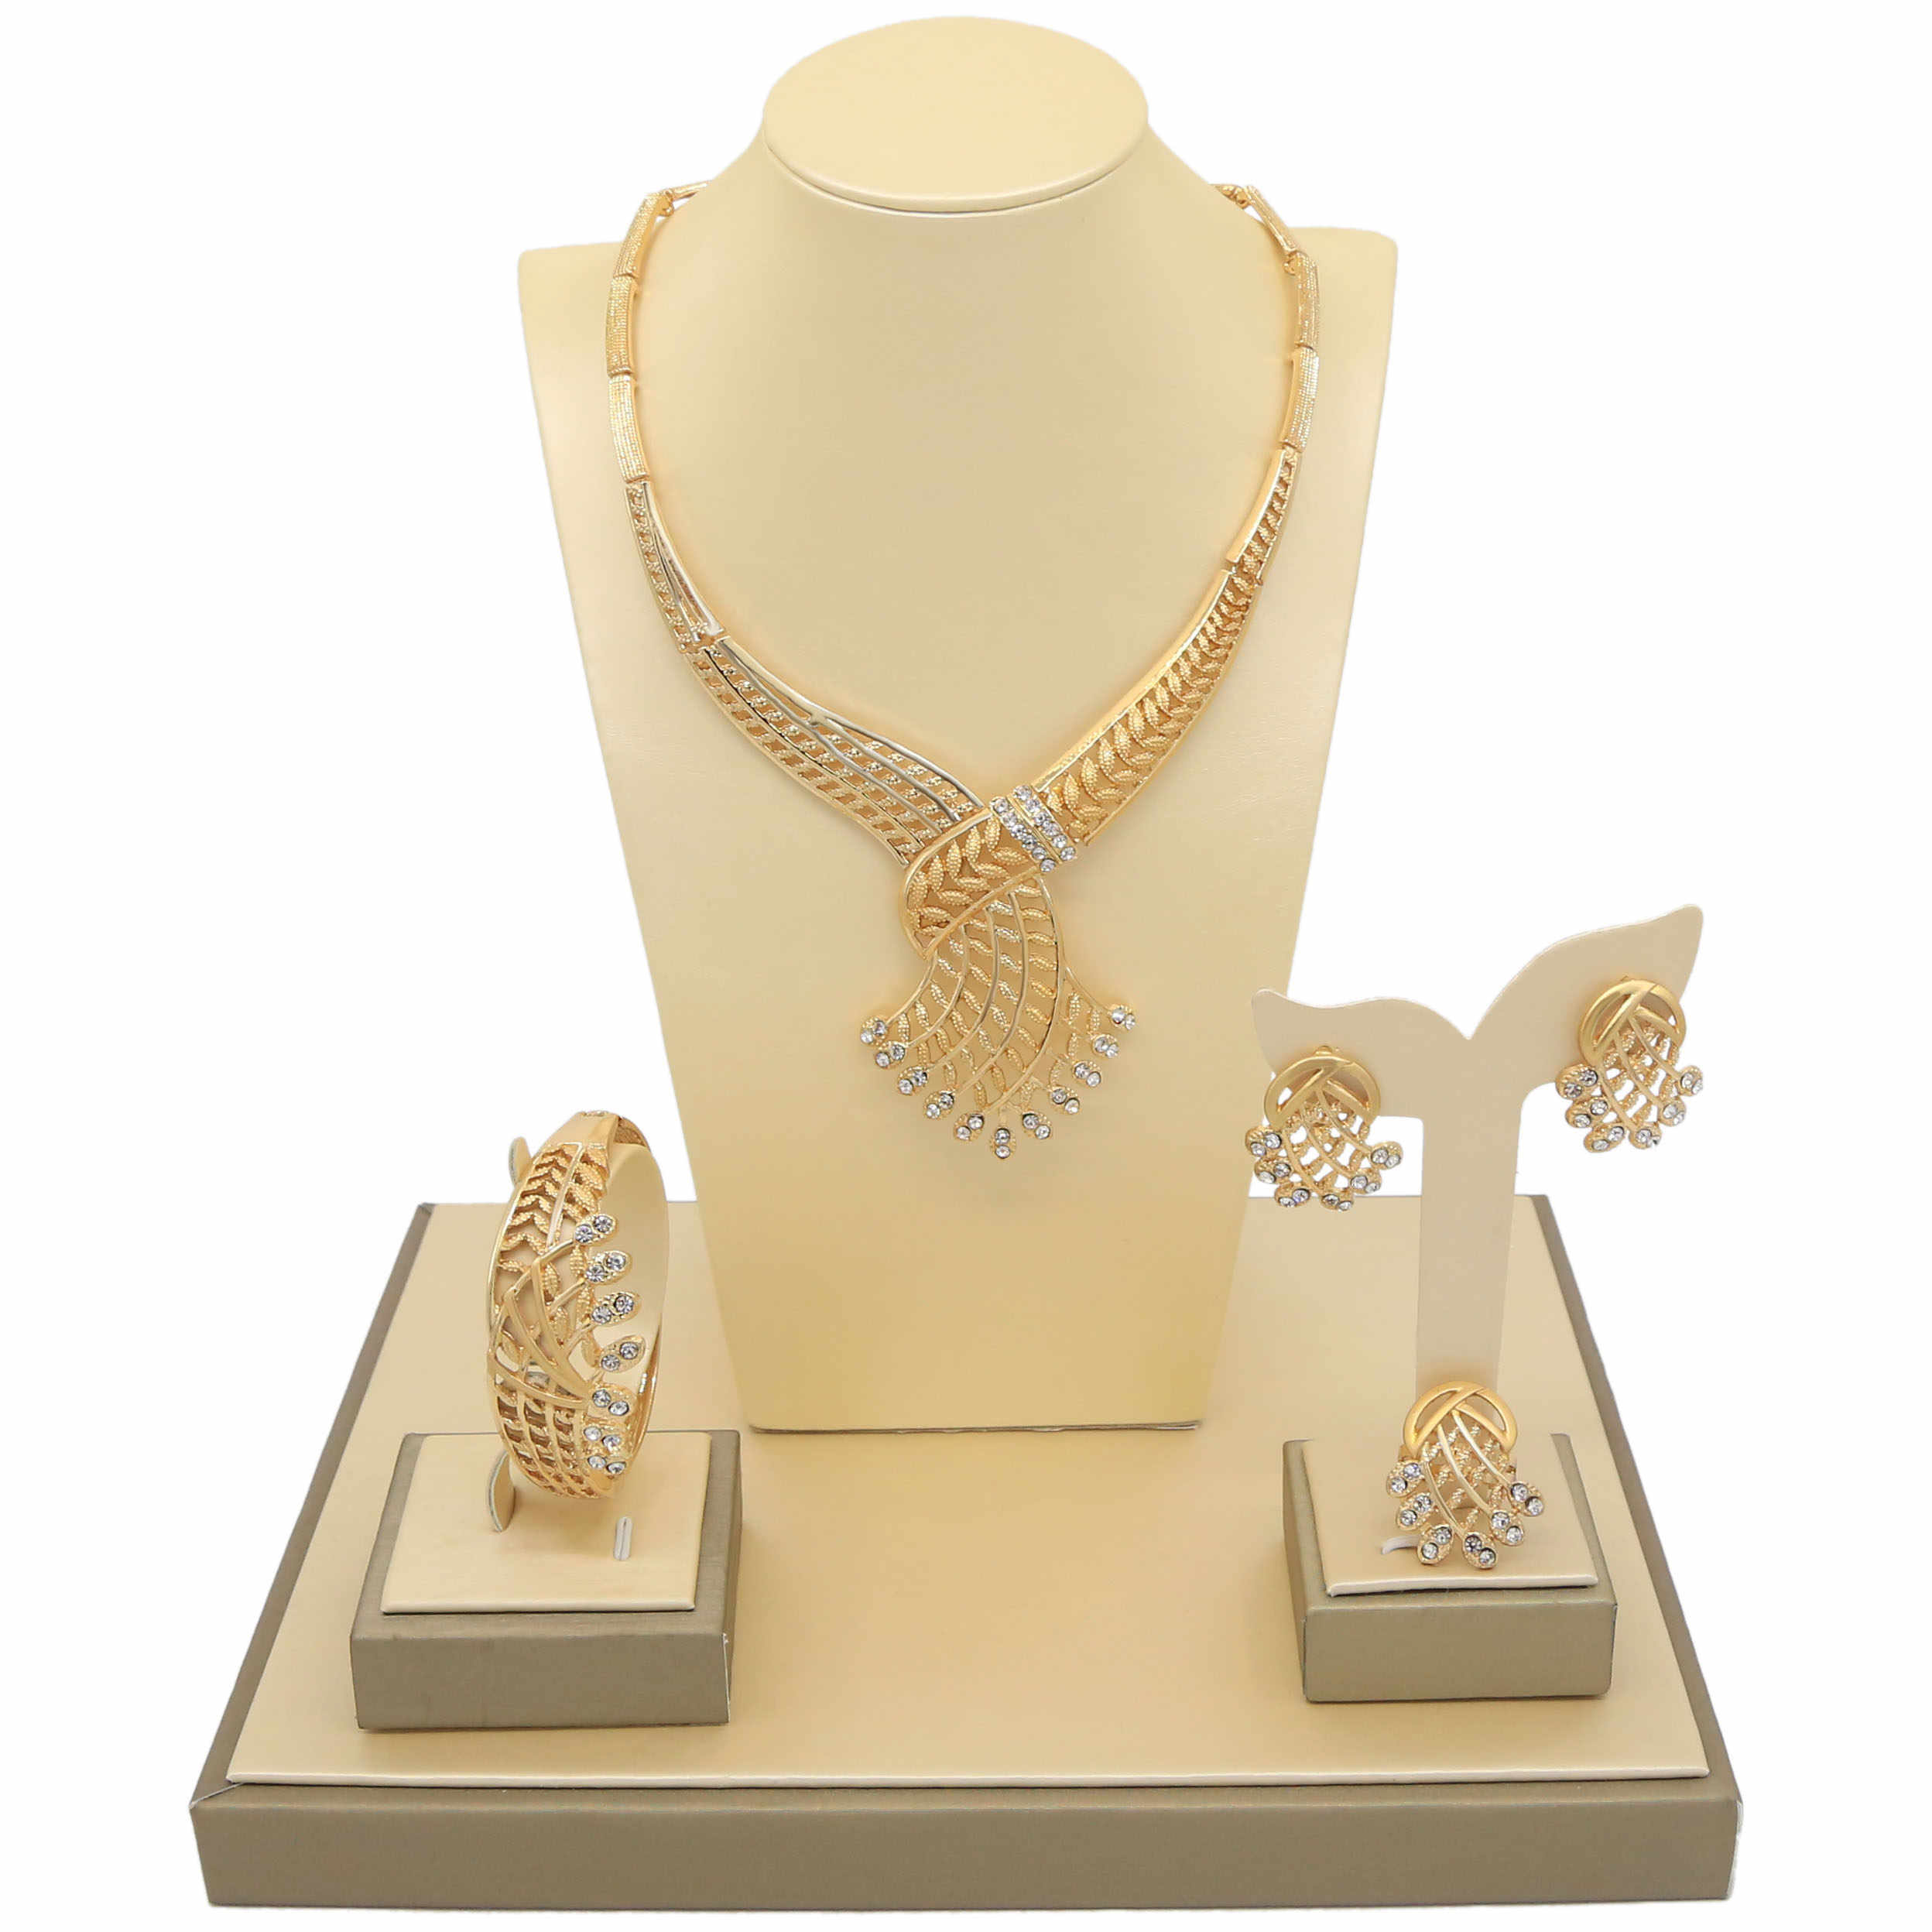 8936fc5937 Yulaili 2019 New Gold And Silver Two Colors Bridal Making Supplies Italian  Golden Series Deceny Jewelry